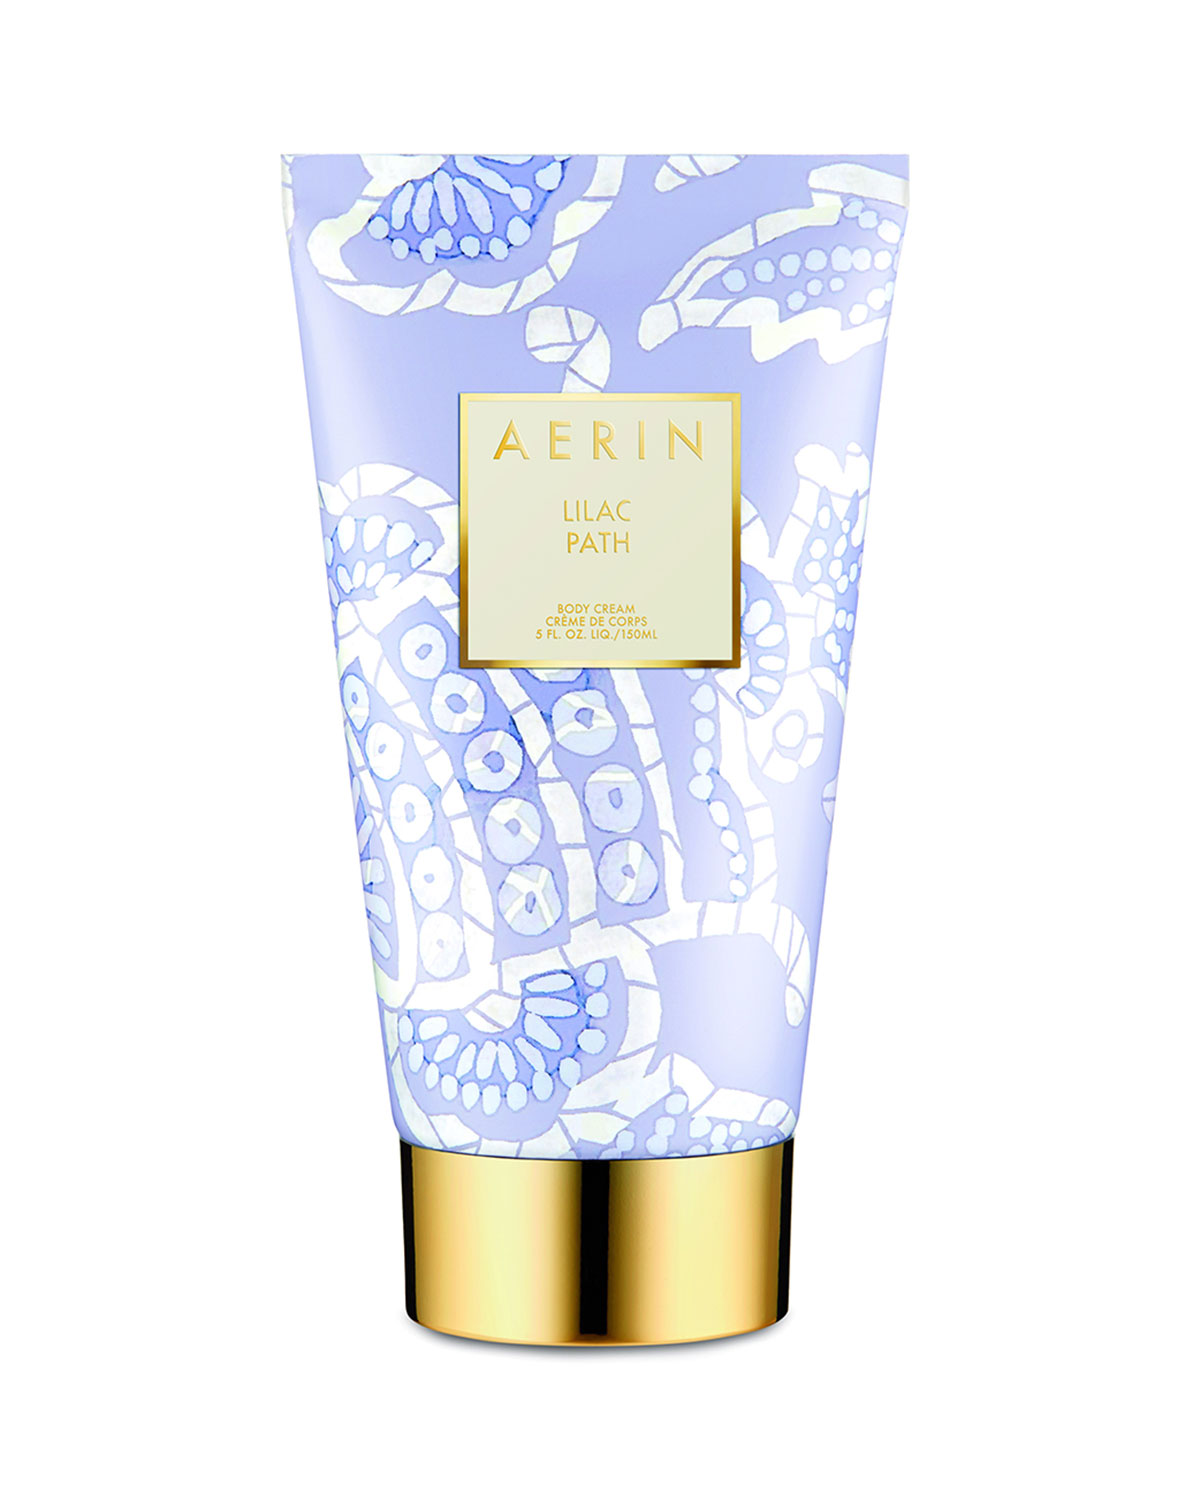 Body Cream, Lilac Path, 150 mL - AERIN Beauty